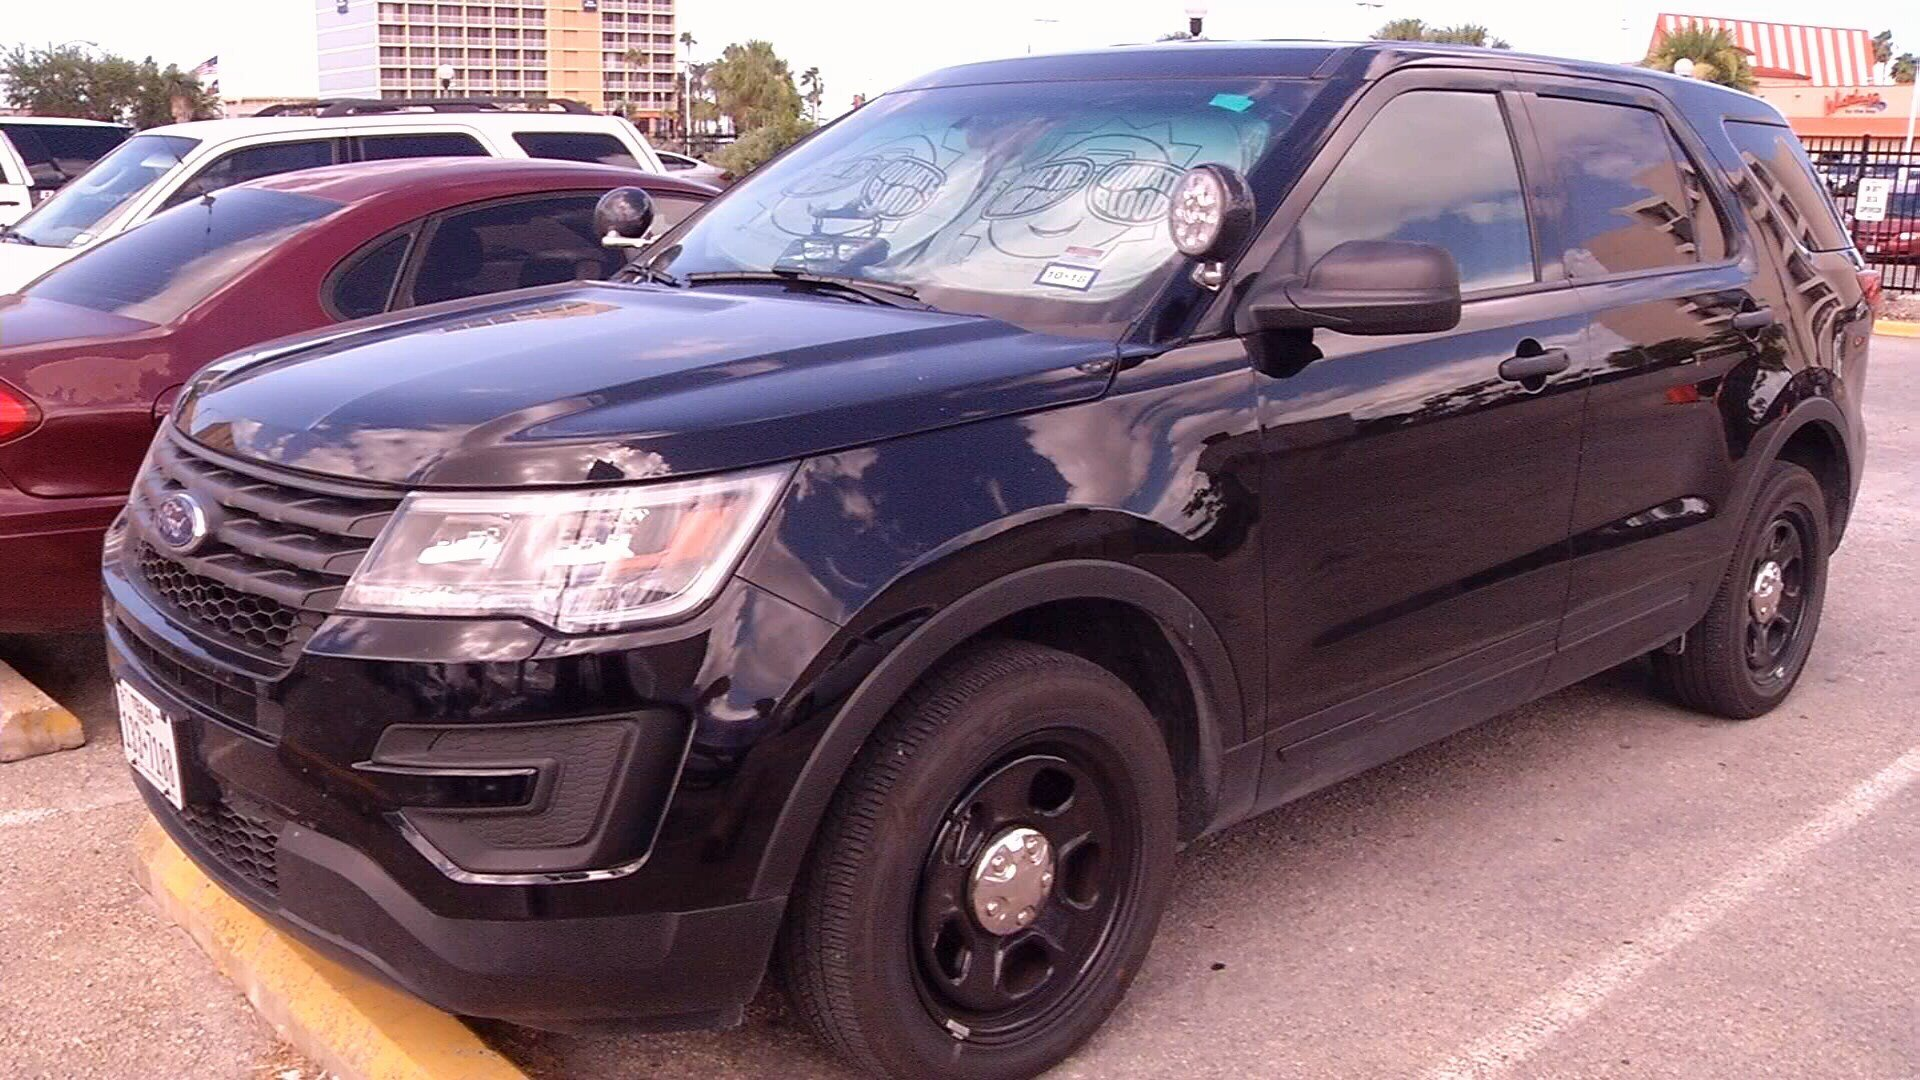 Just an example of an unmarked police unit.